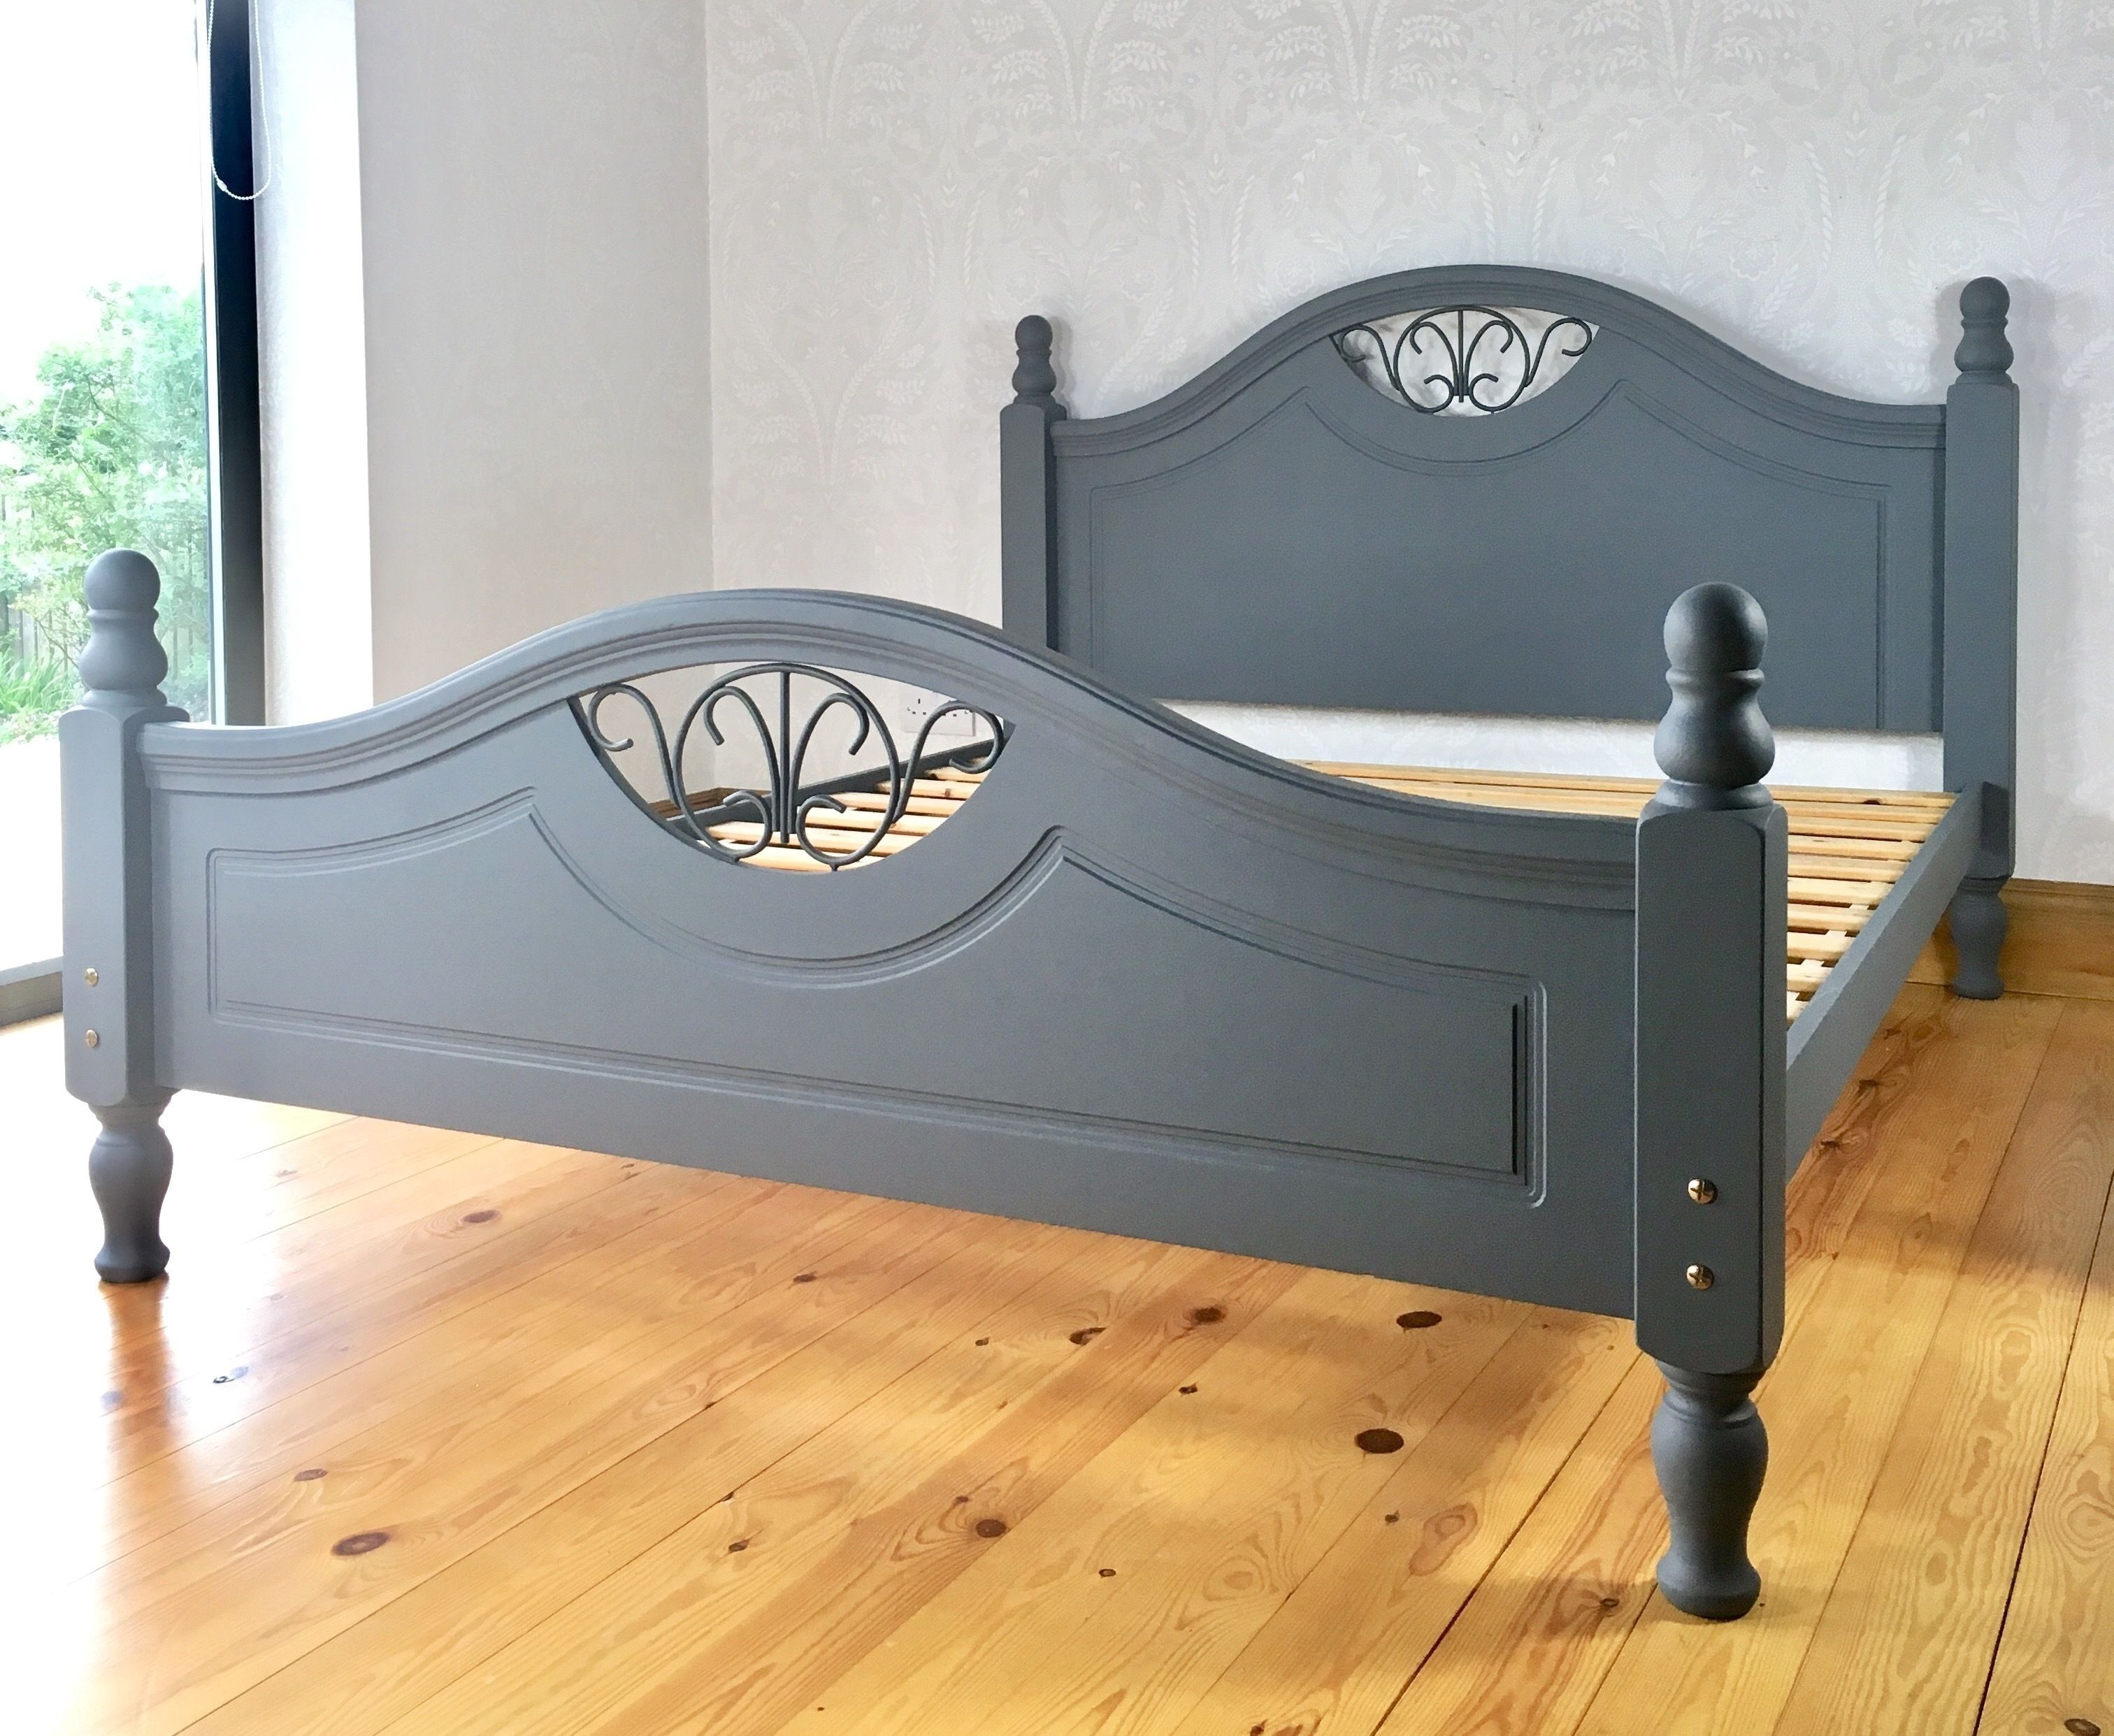 King Size Bed Frame Bedroom Furniture Solid Wooden Piece With Iron Fretwork Grey Design In 2020 King Size Bedroom Furniture King Bed Frame King Size Bed Frame